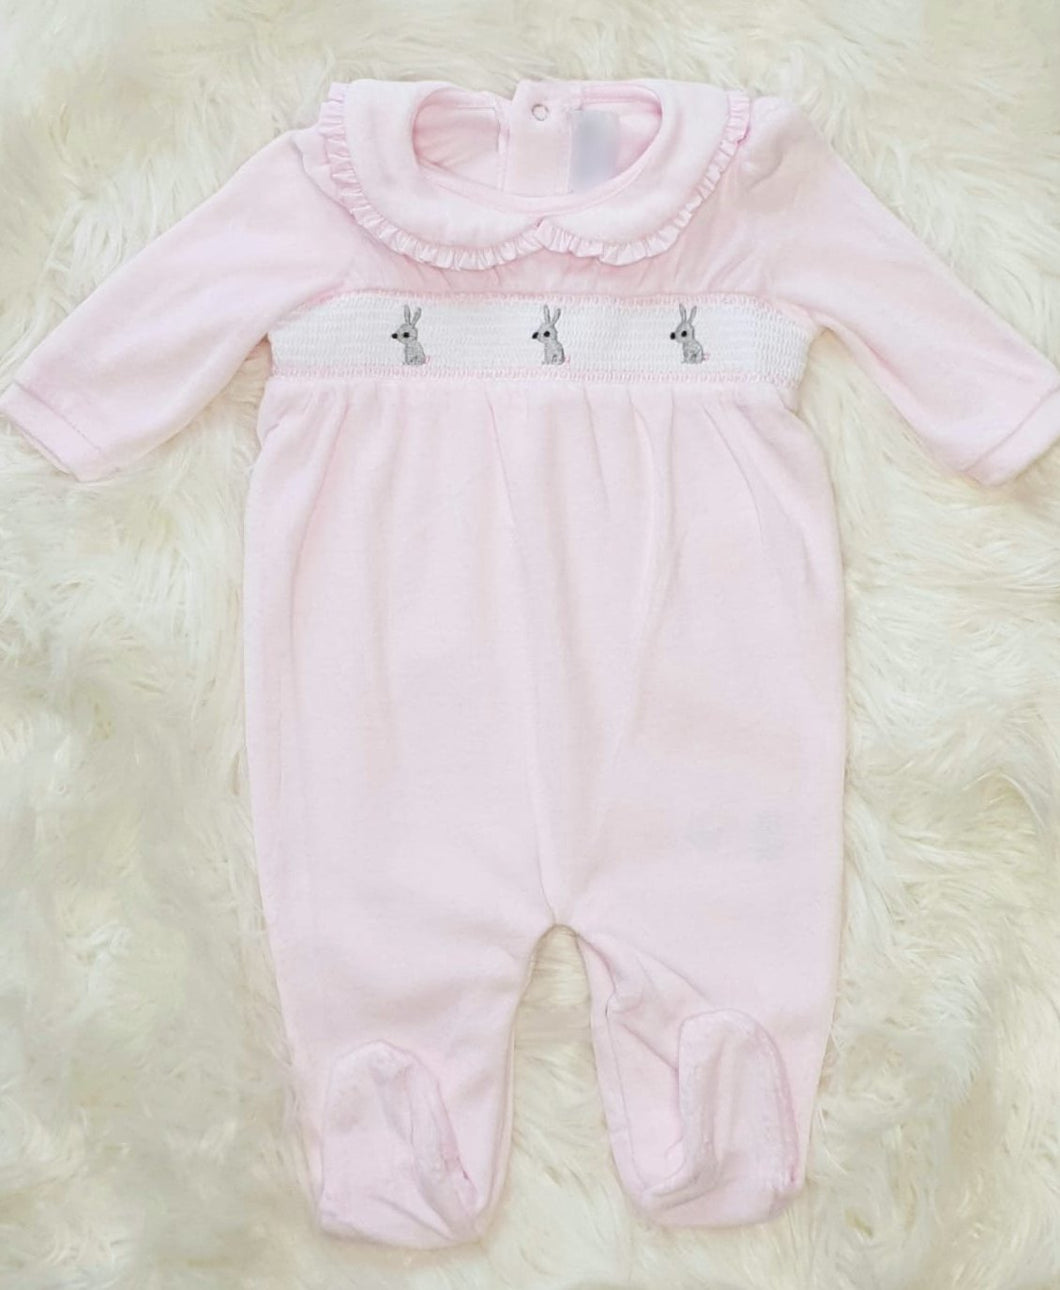 Baby Pink Smocked Velour Sleepsuit With Embroidered Bunnies